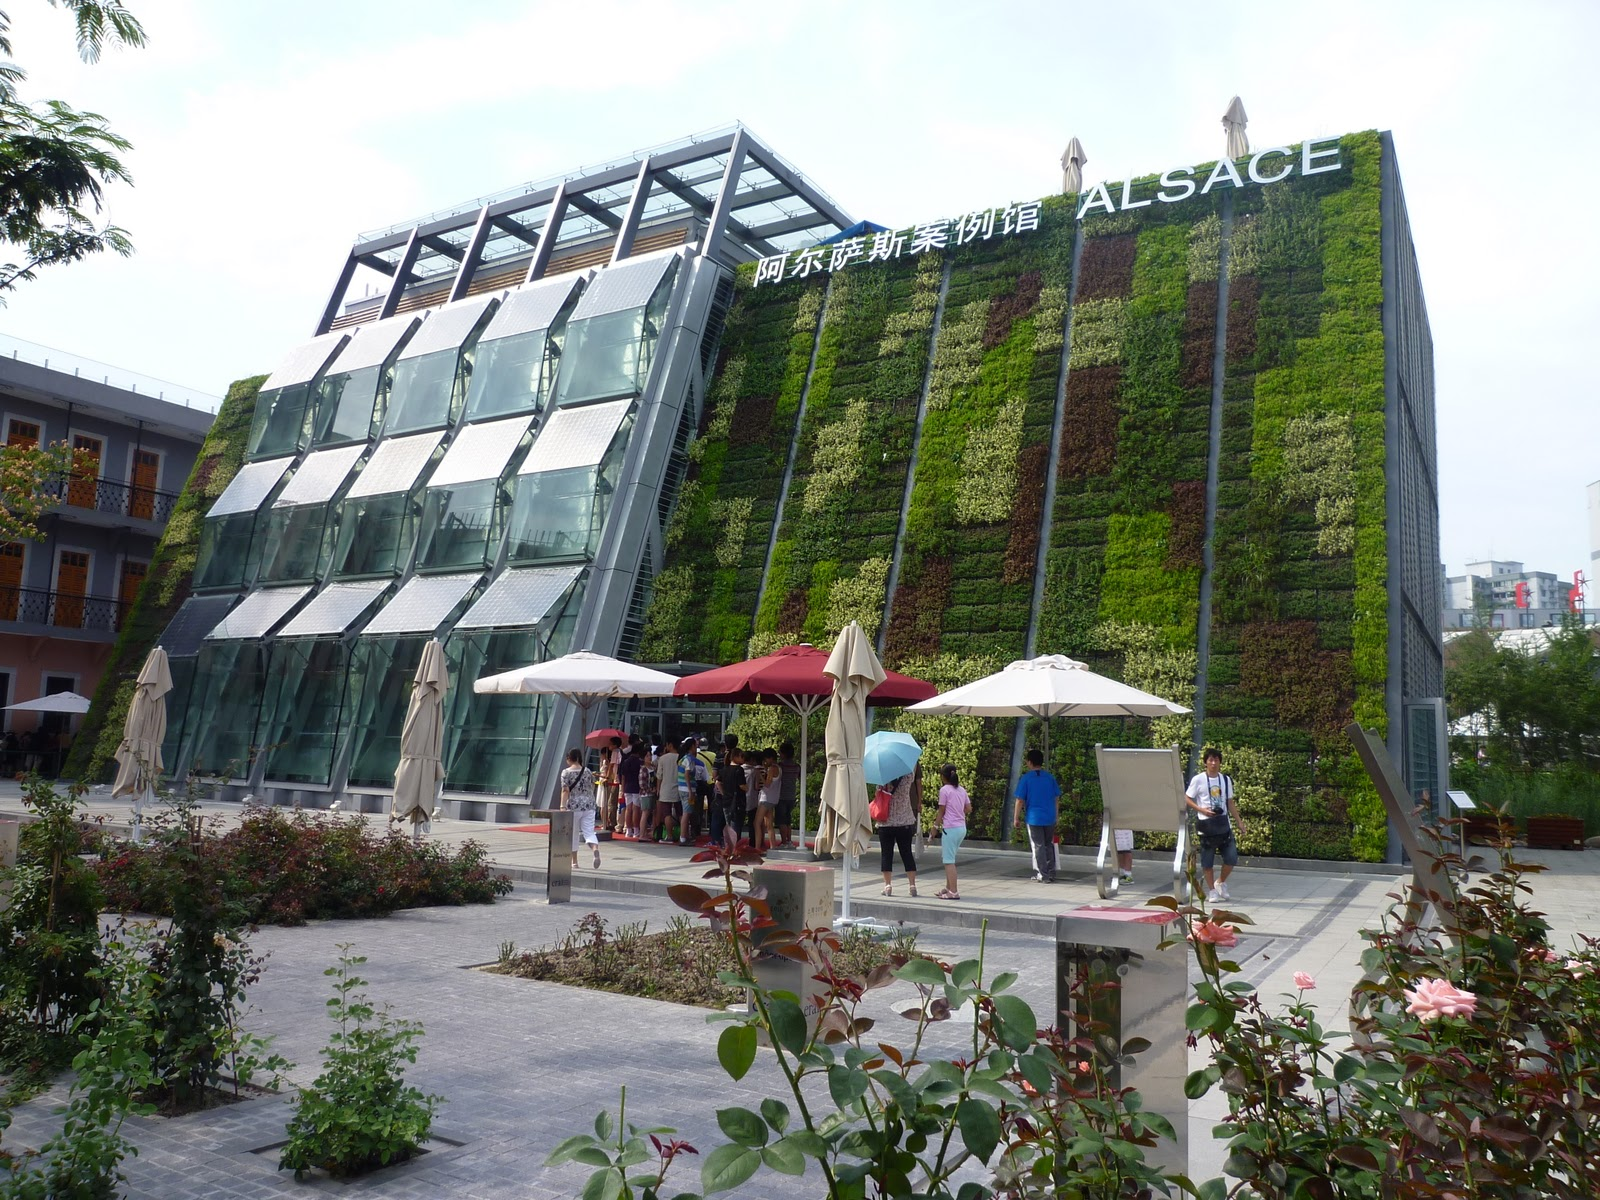 World expo 2010 shanghai china a green idea at alsace for Expo 2010 pavilions